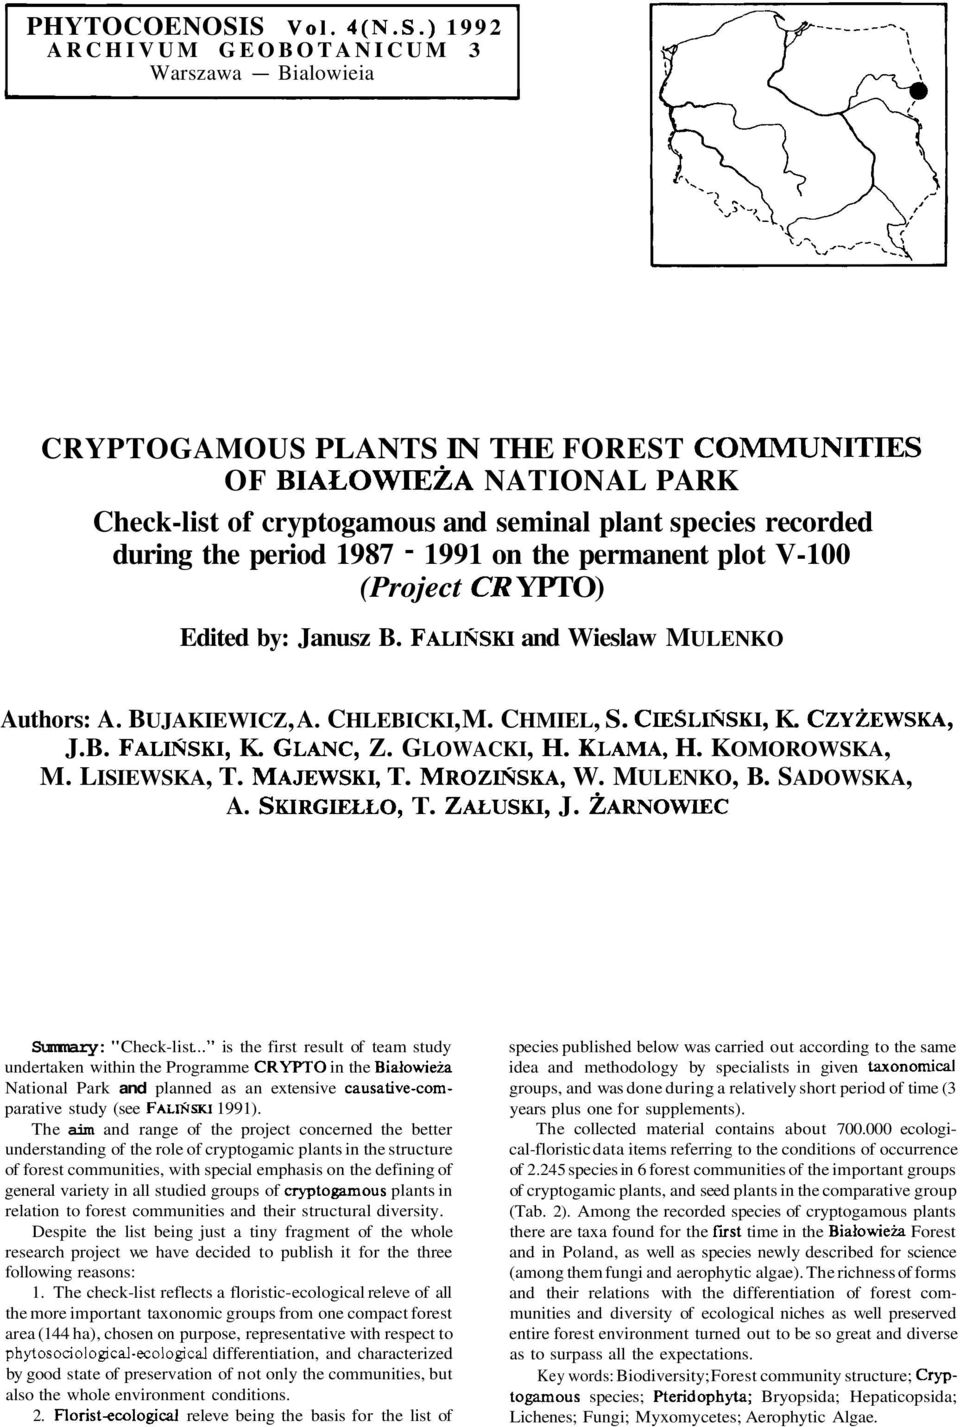 recorded during the period 1987-1991 on the permanent plot V-100 (Project CR YPTO) Edited by: Janusz B. FALINSKI and Wieslaw MULENKO Authors: A. BUJAKIEWICZ, A. CHLEBICKI, M. CHMIEL, S. CIESLISSKI, K.